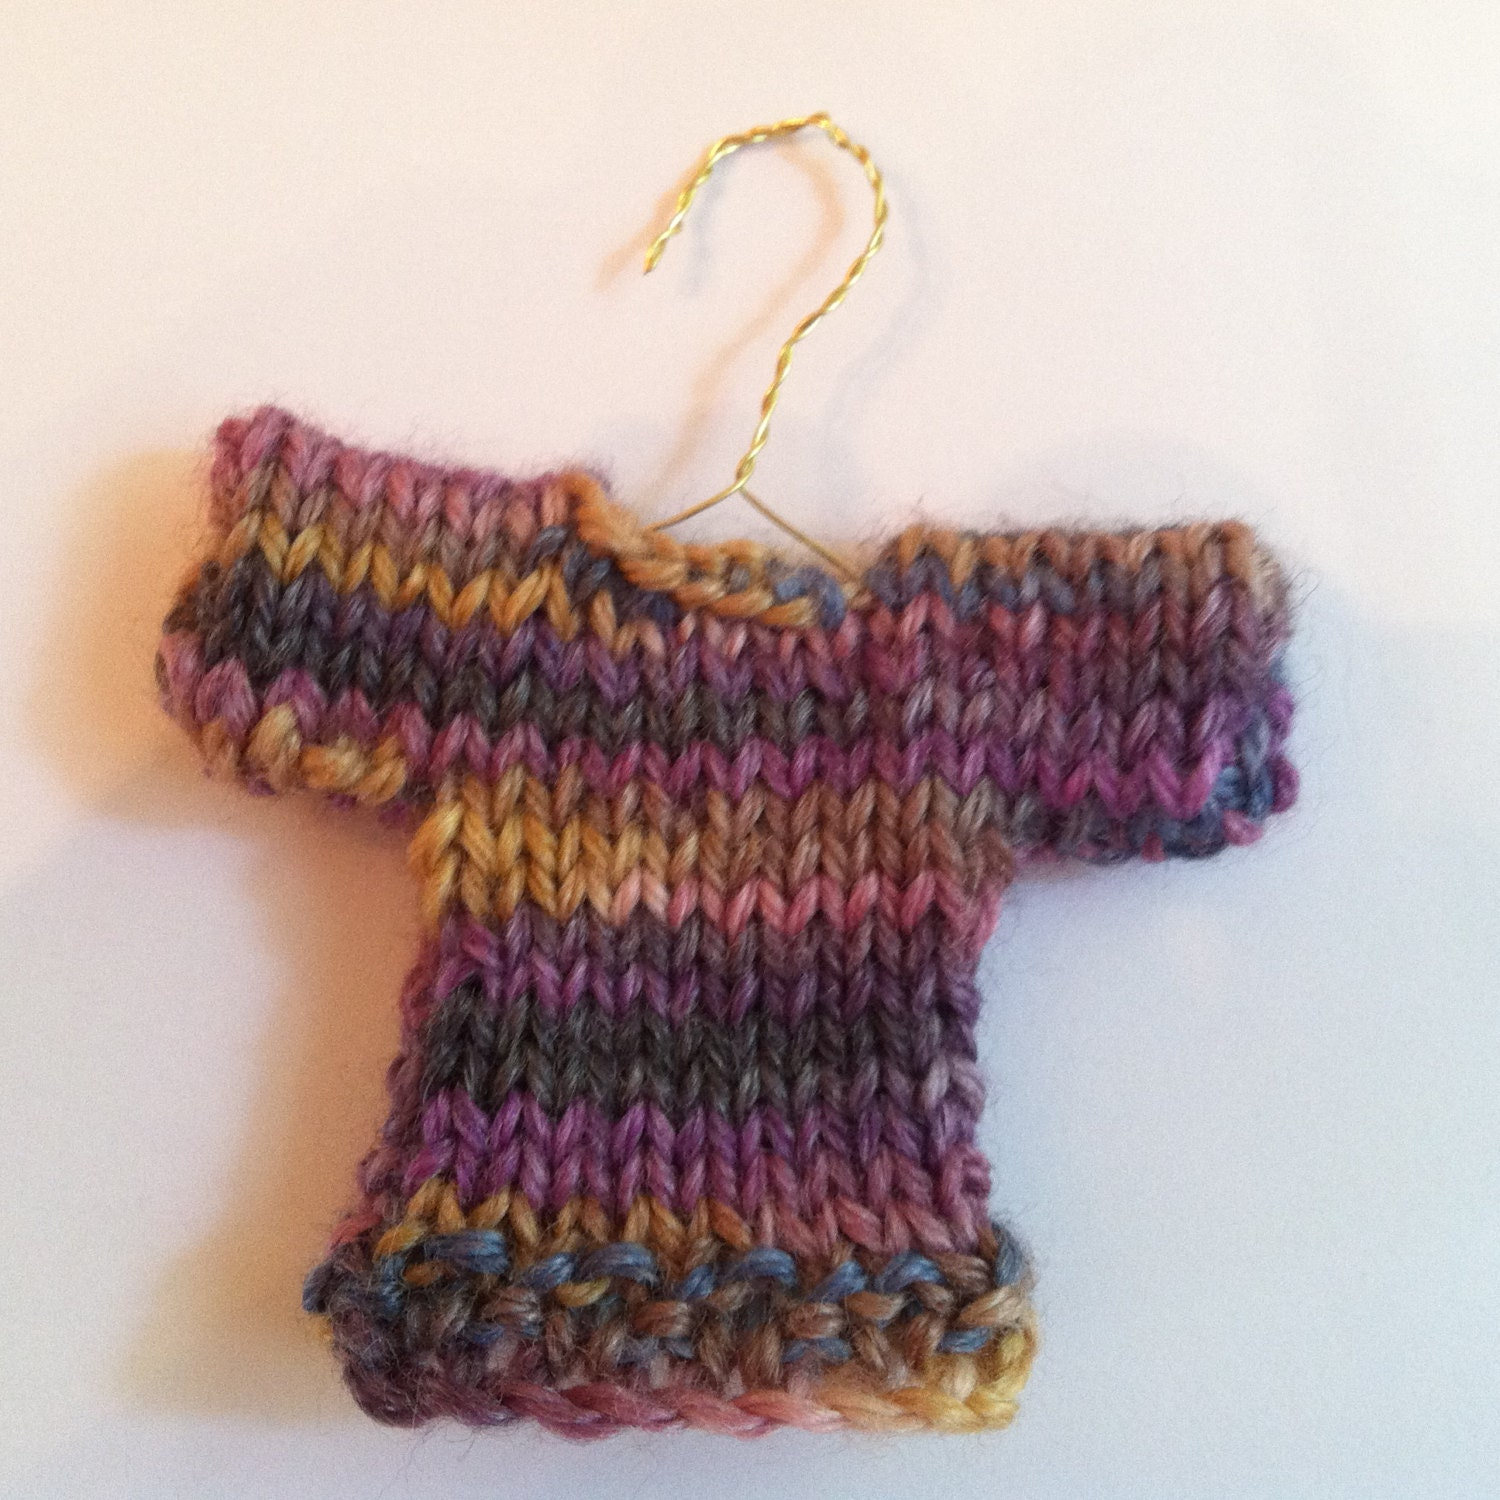 Knit Pattern Sweater Ornament : Cute Mini Knit Sweater Ornament Handmade Ornament Knit